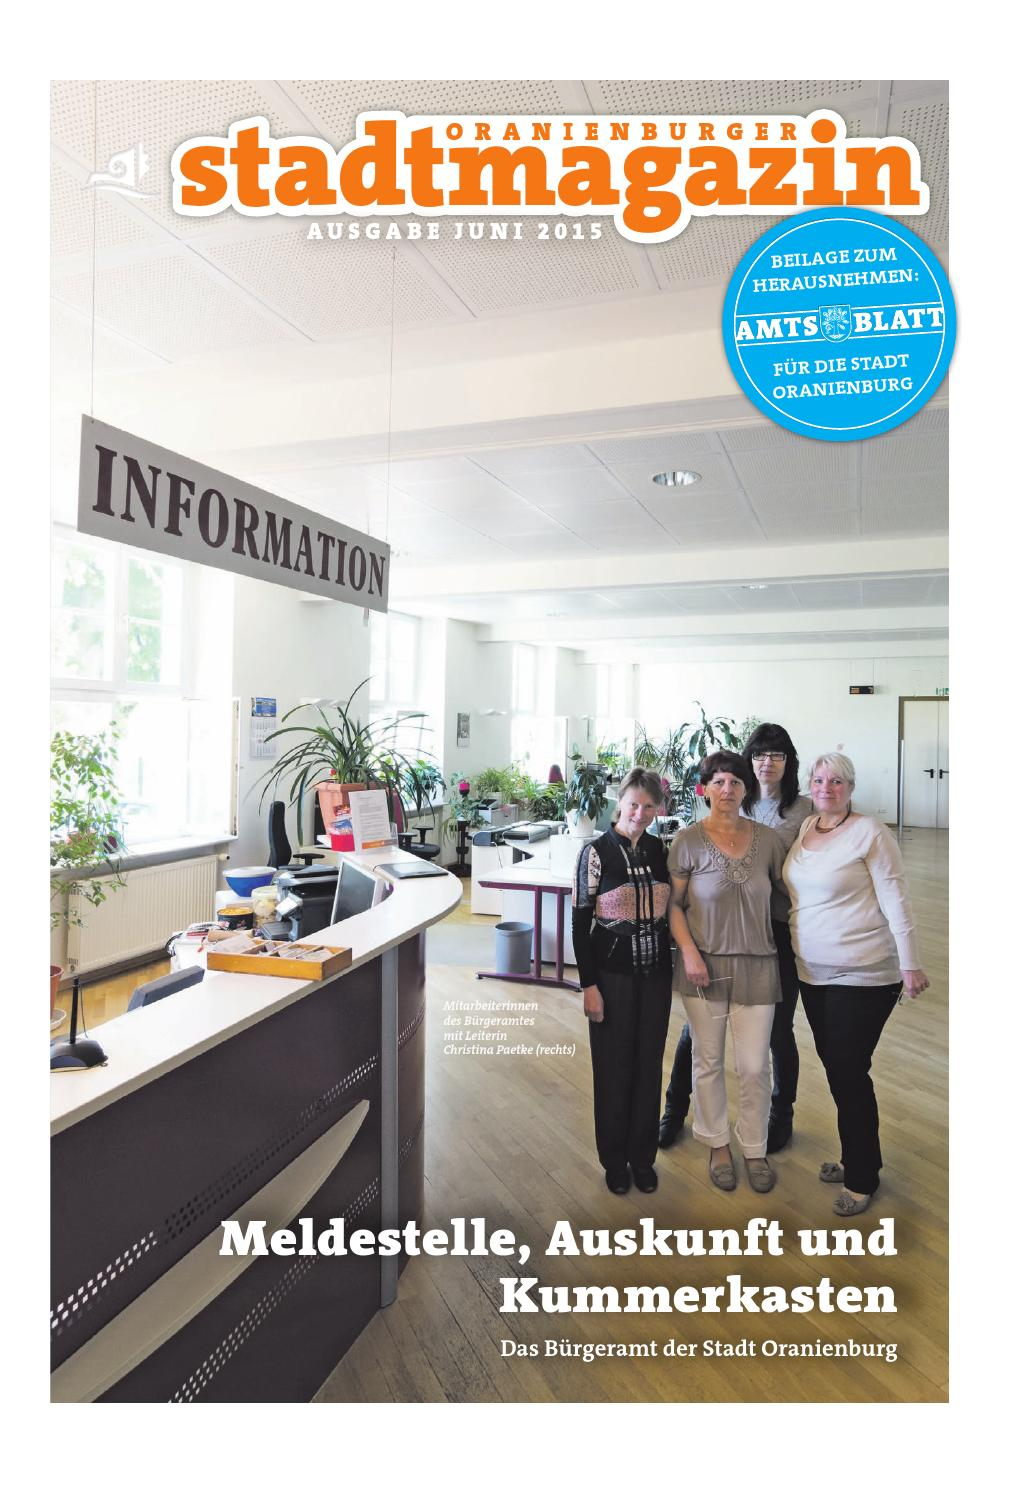 Oranienburger Stadtmagazin (Juni 2015) by Stadt Oranienburg - issuu